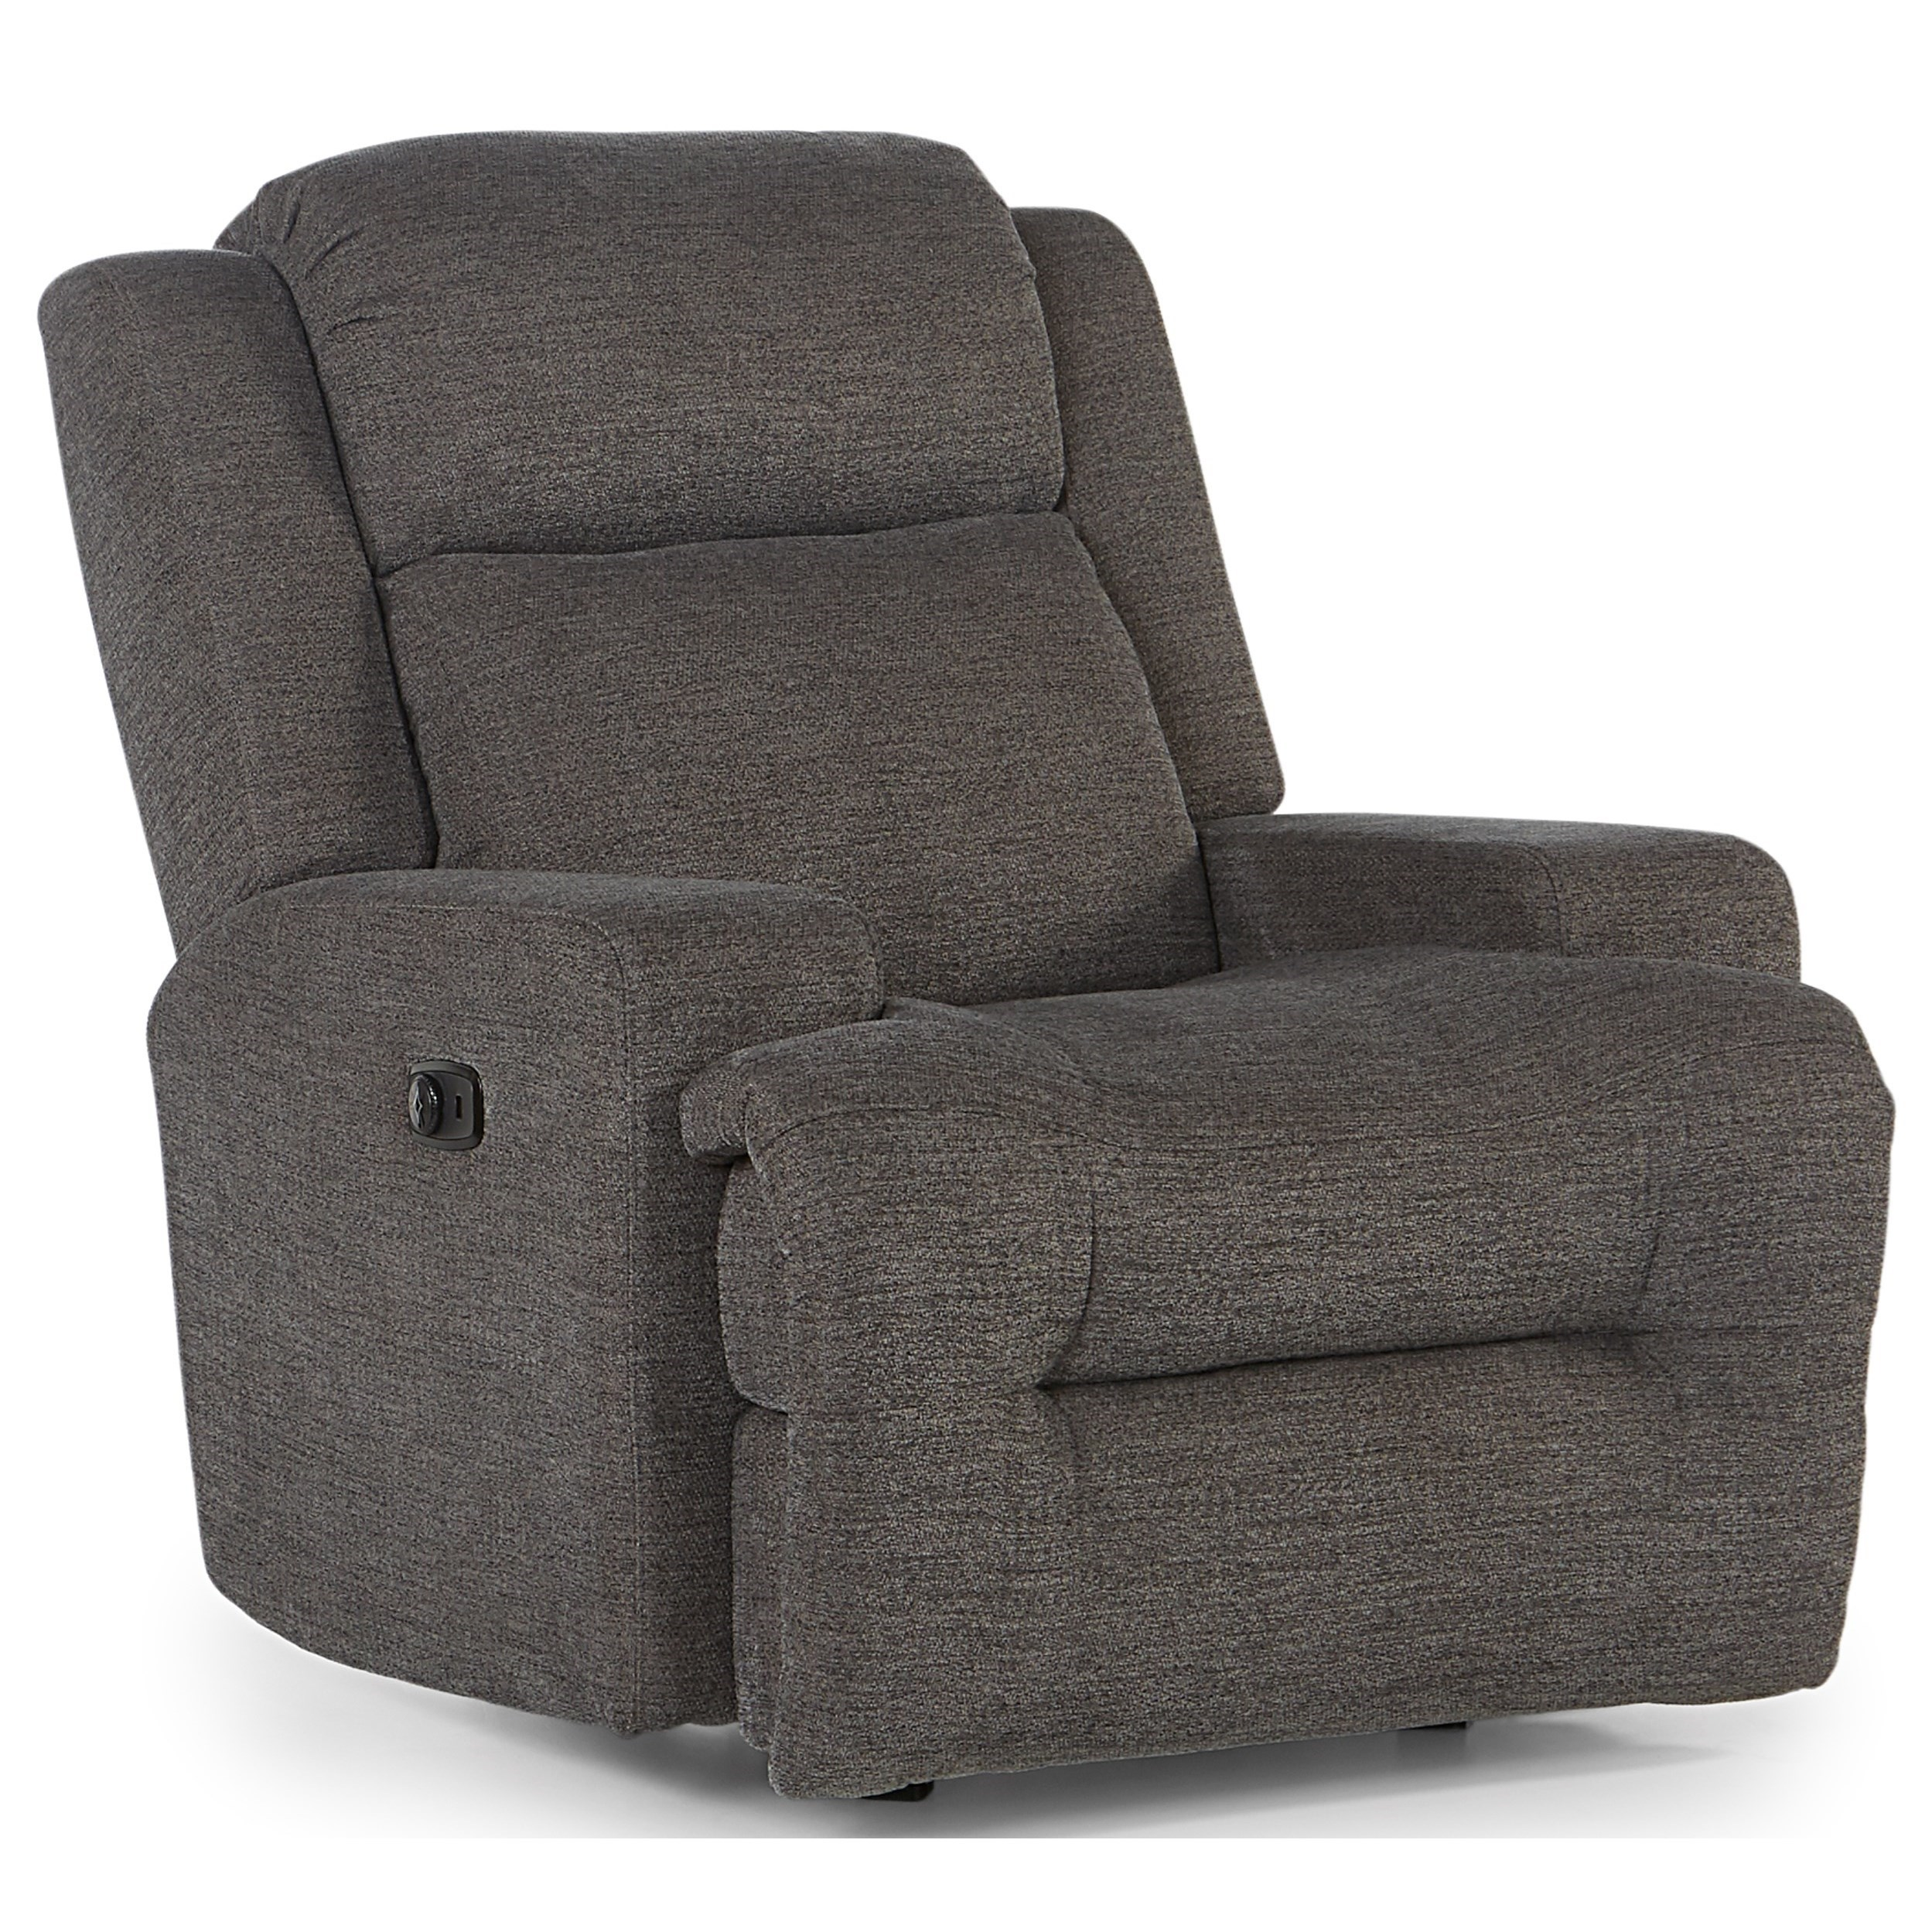 O'Neil Power Rocker Recliner by Best Home Furnishings at Suburban Furniture